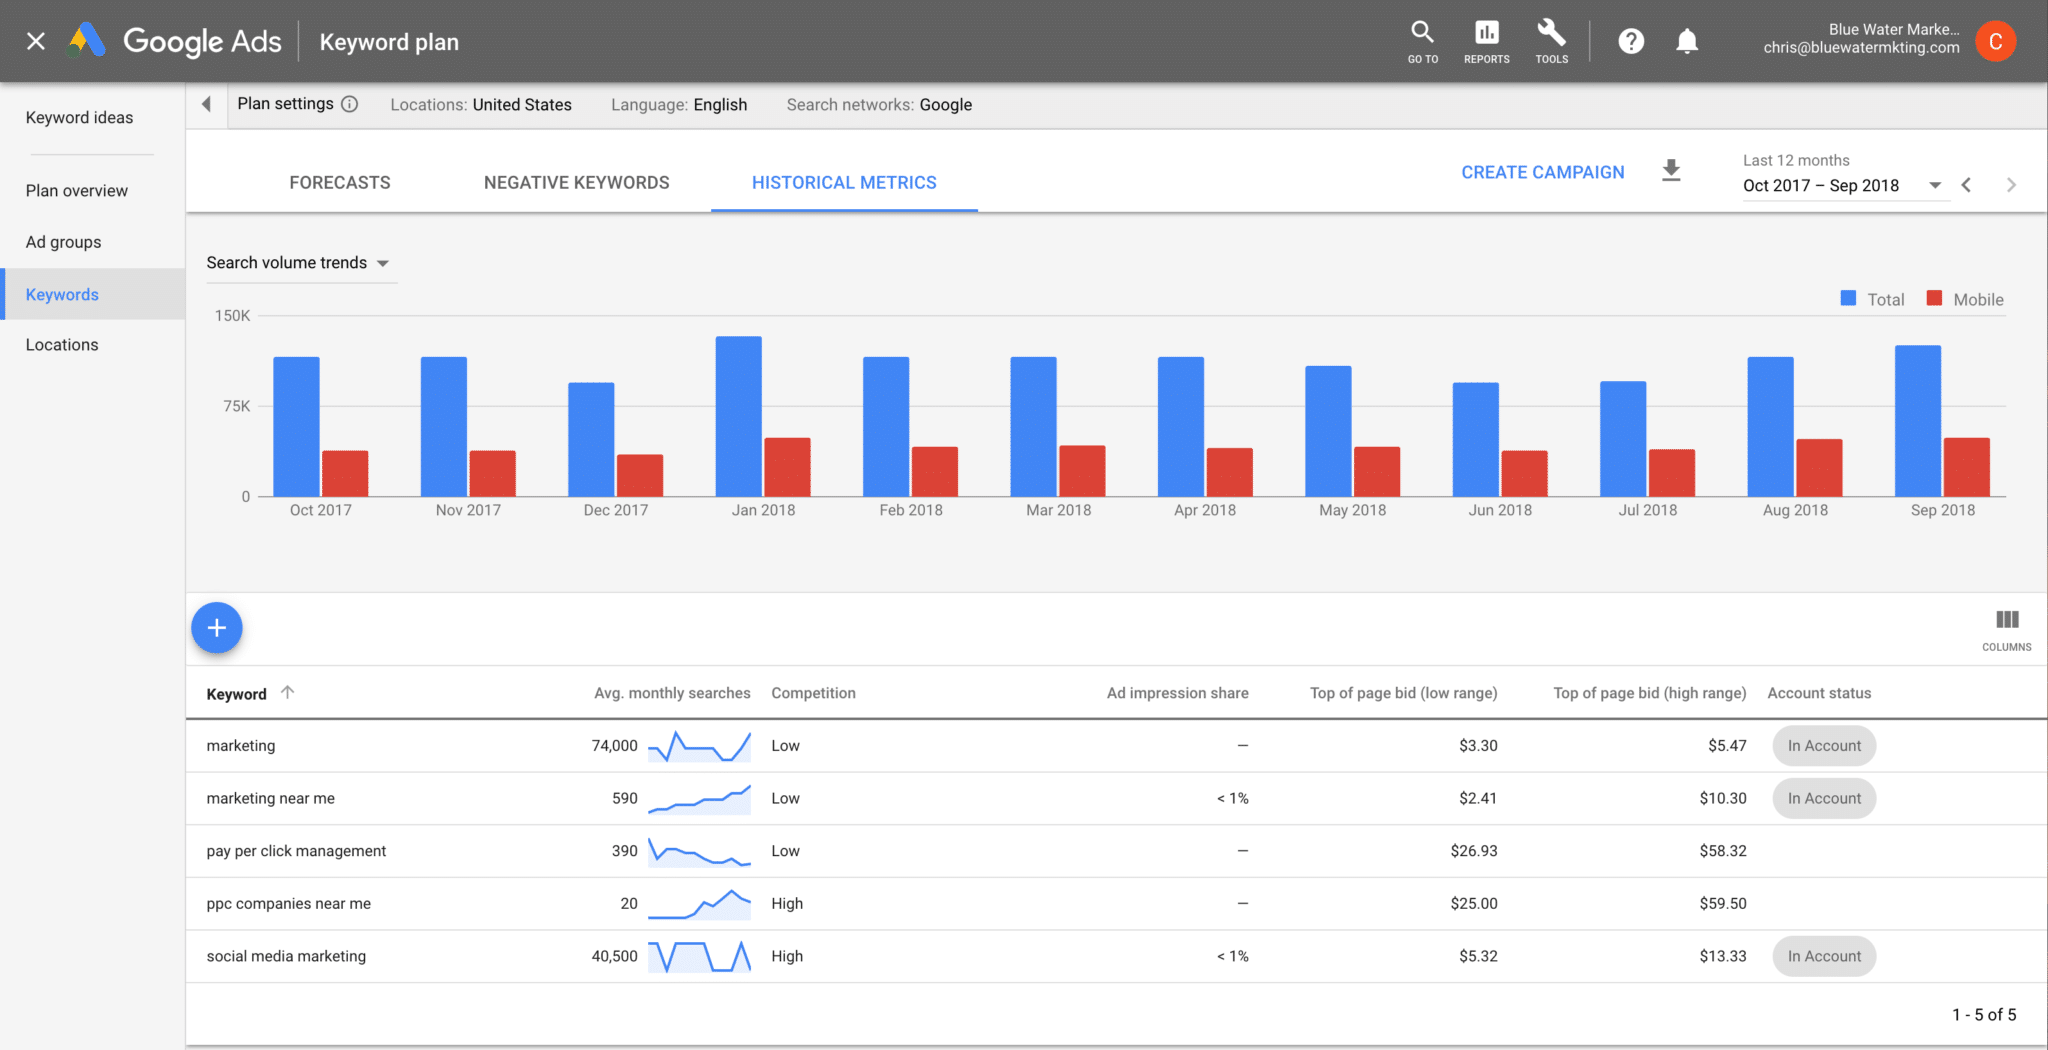 Google Keyword Planner Screen Shot Blue Water Marketing Account